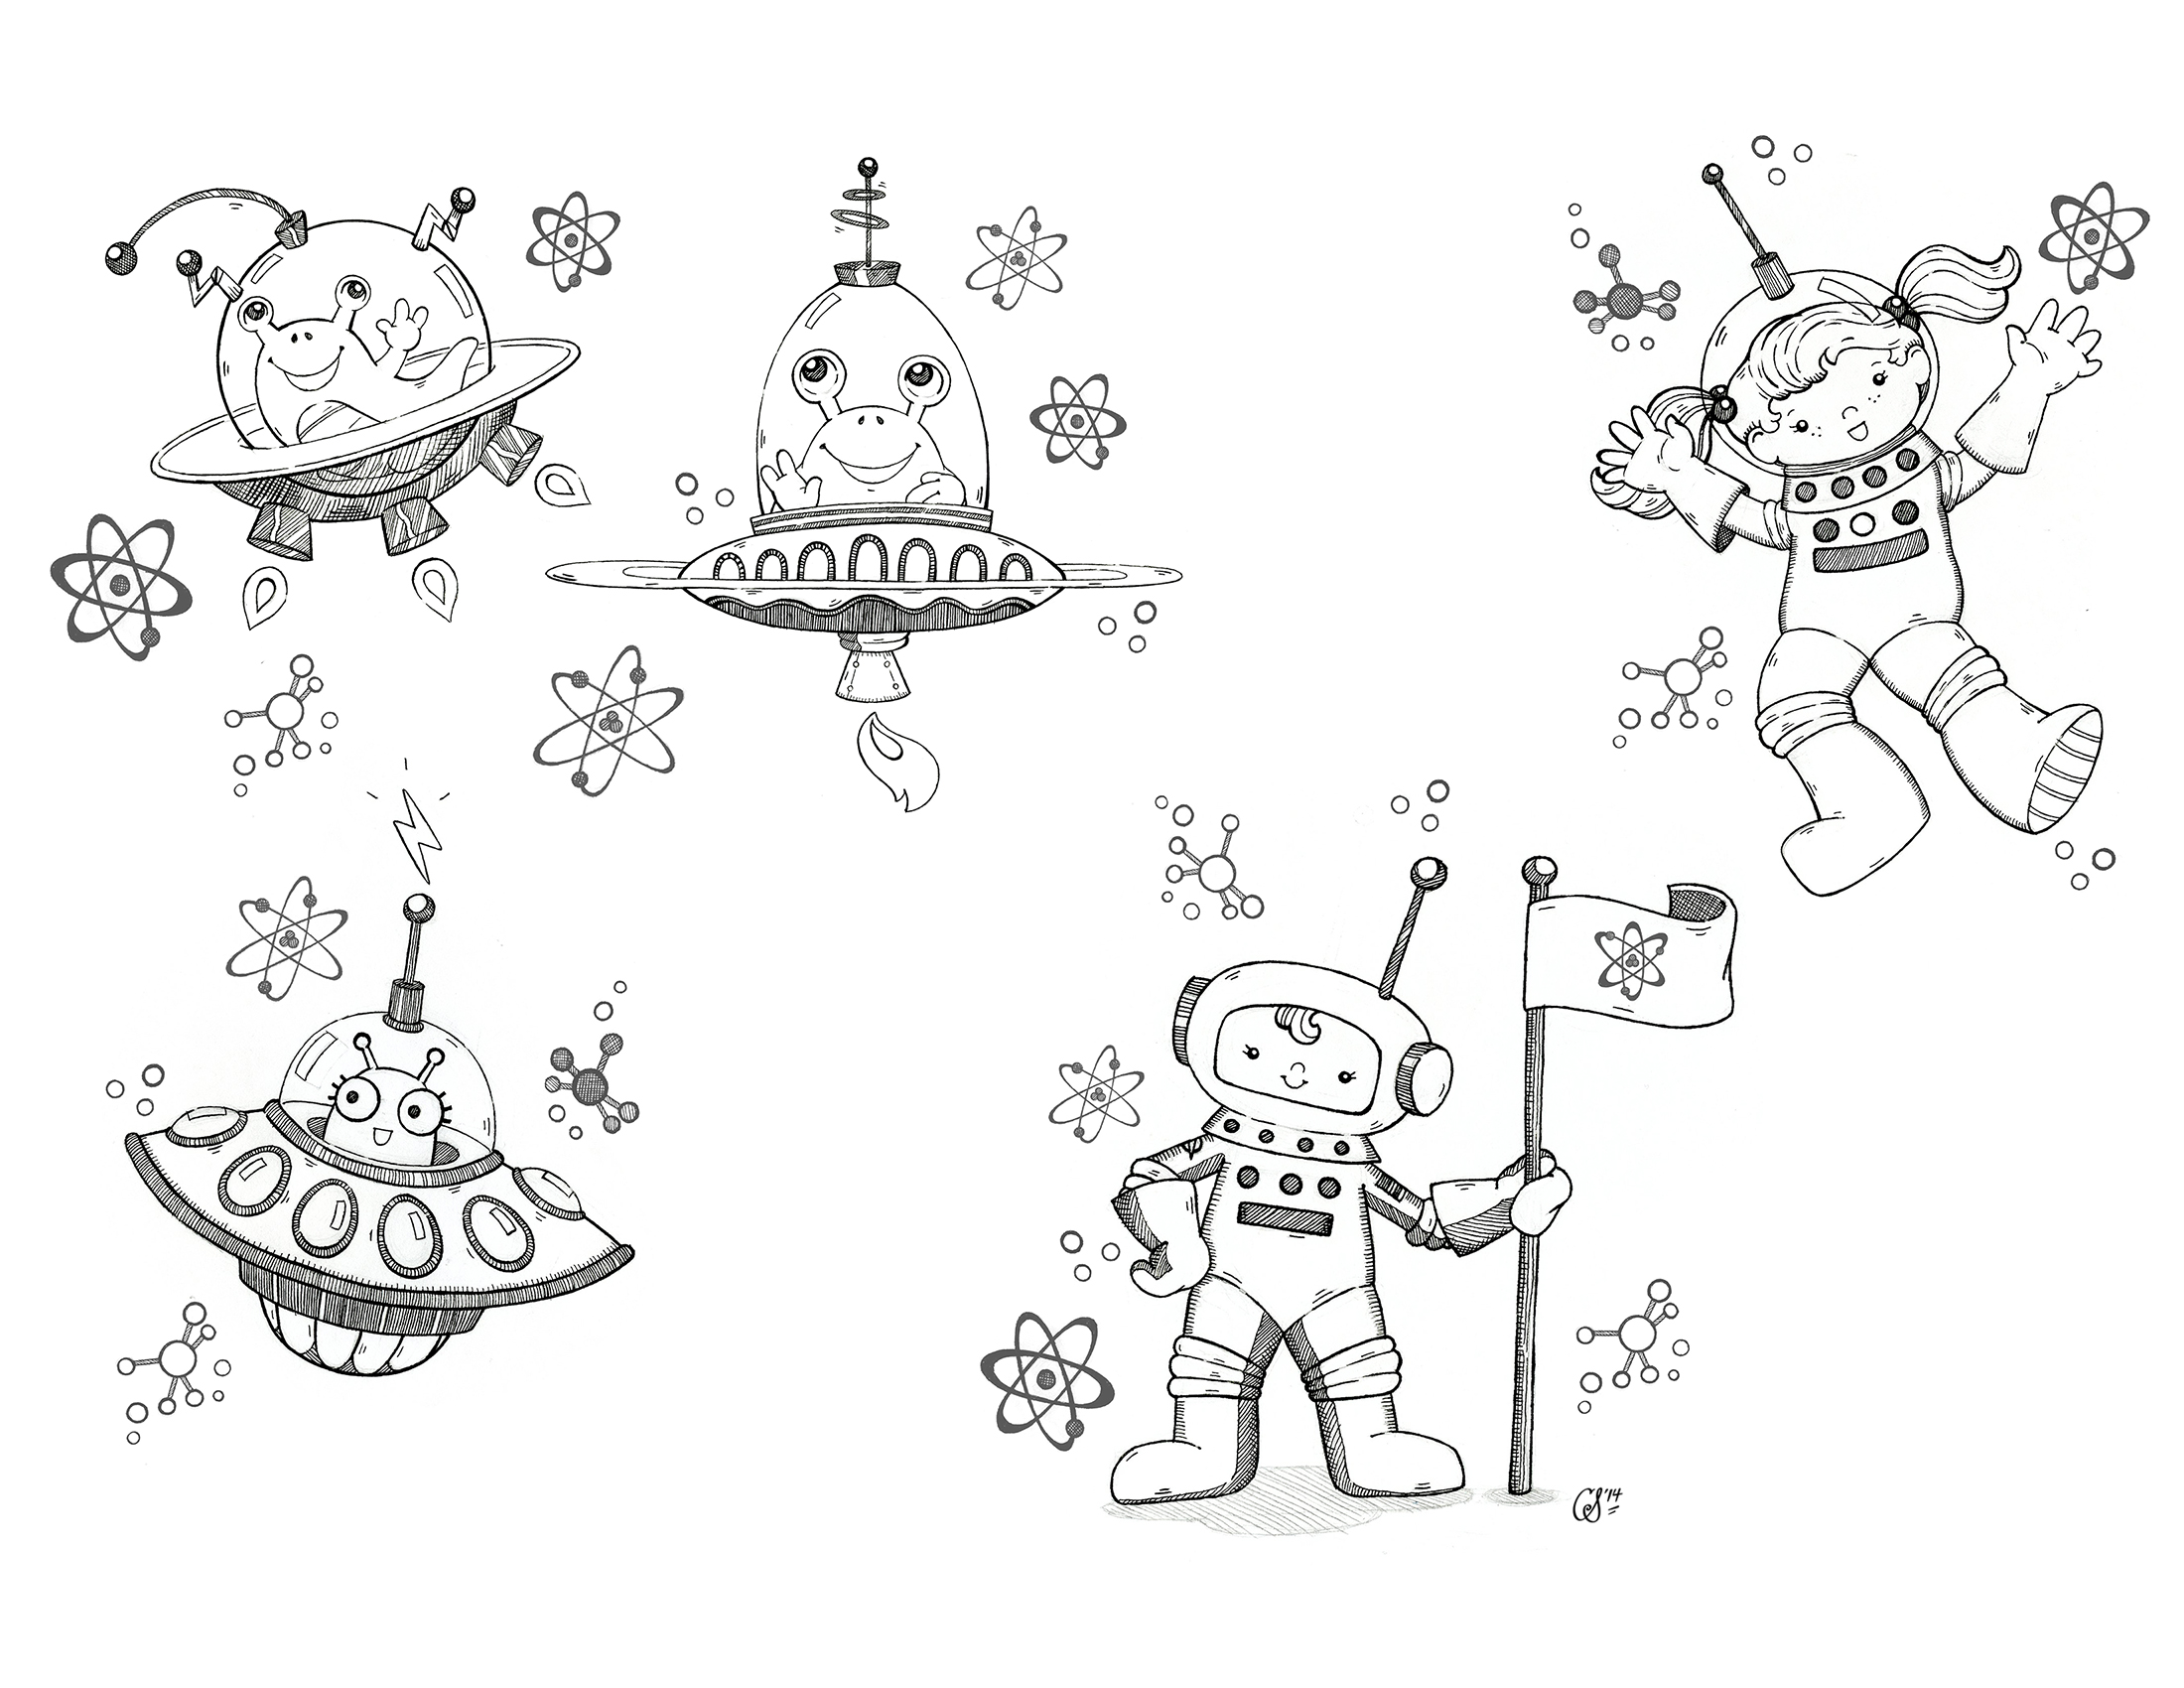 Astronaut Kids and Alien Characters